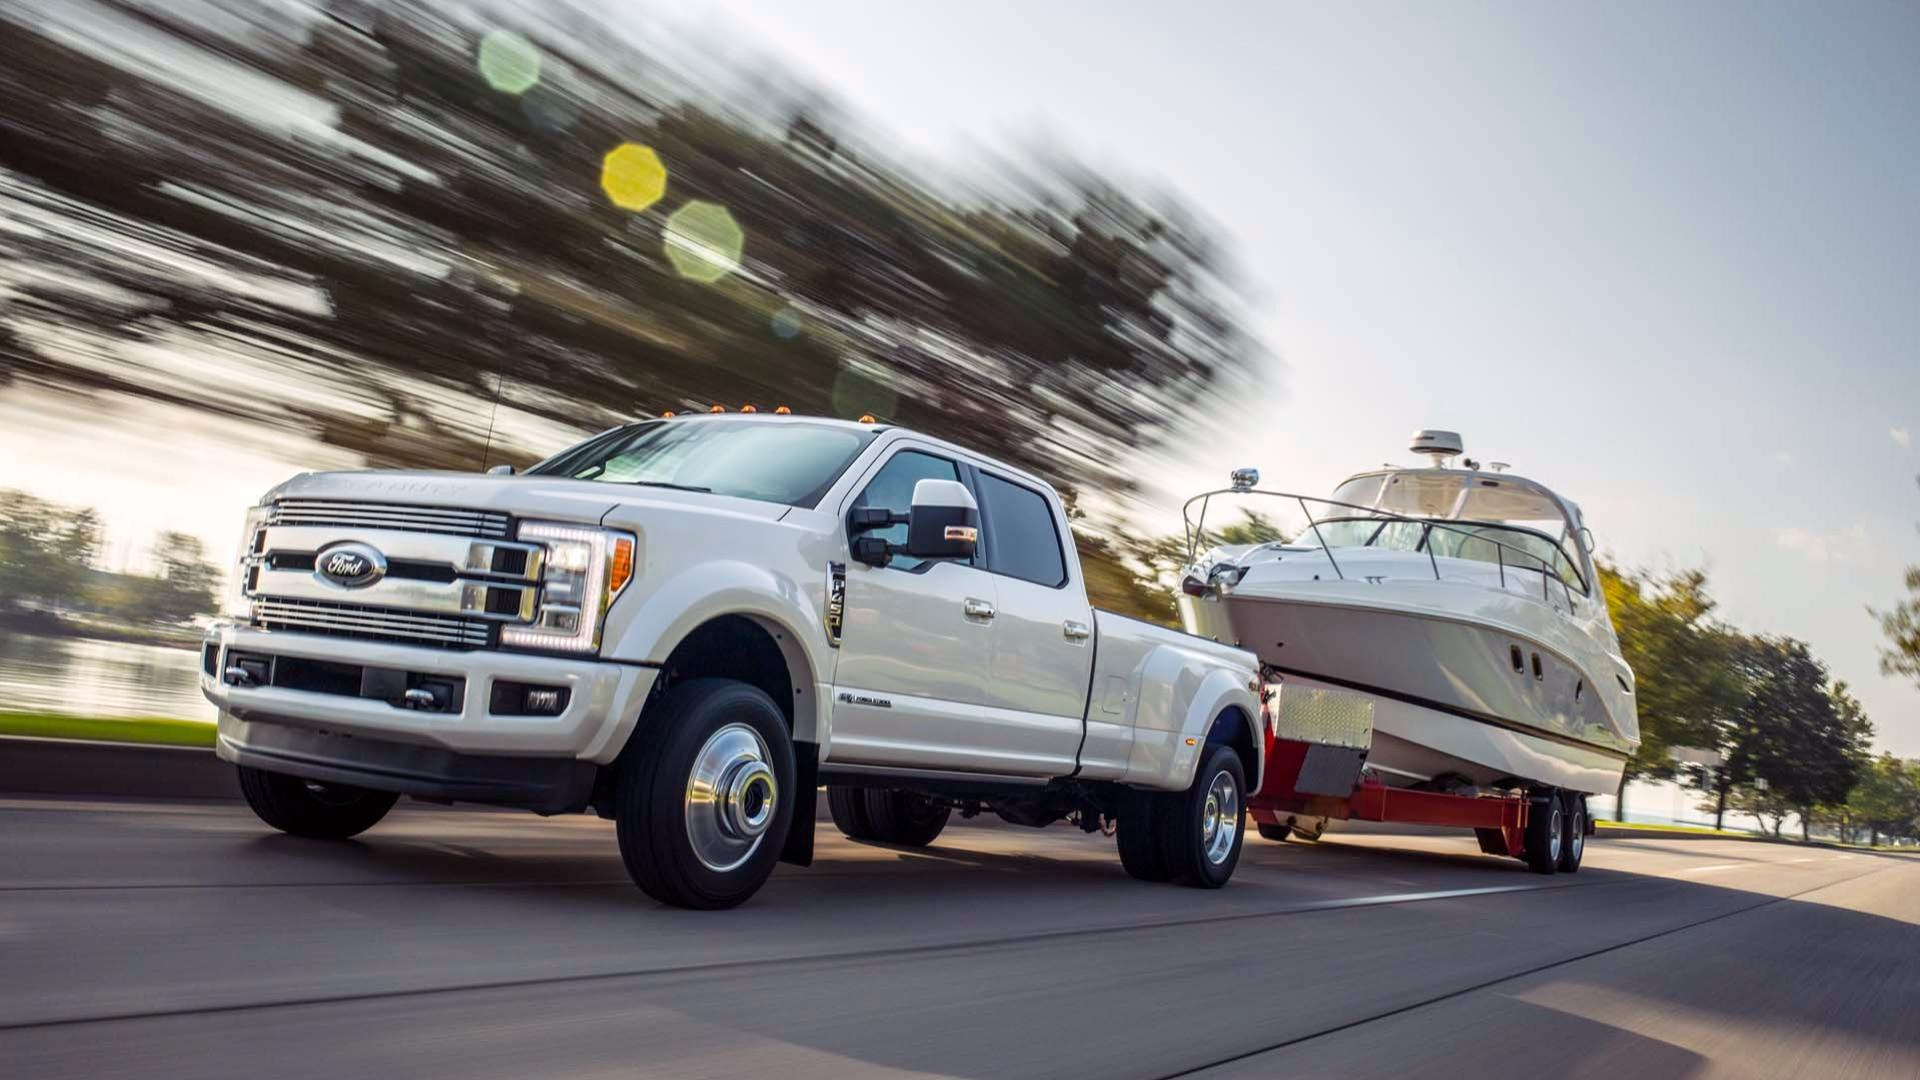 Vwvortex com 2018 ford f series super duty limited trim level revealed in texas sets the bar for luxury and technology starts at 80 835 87 100